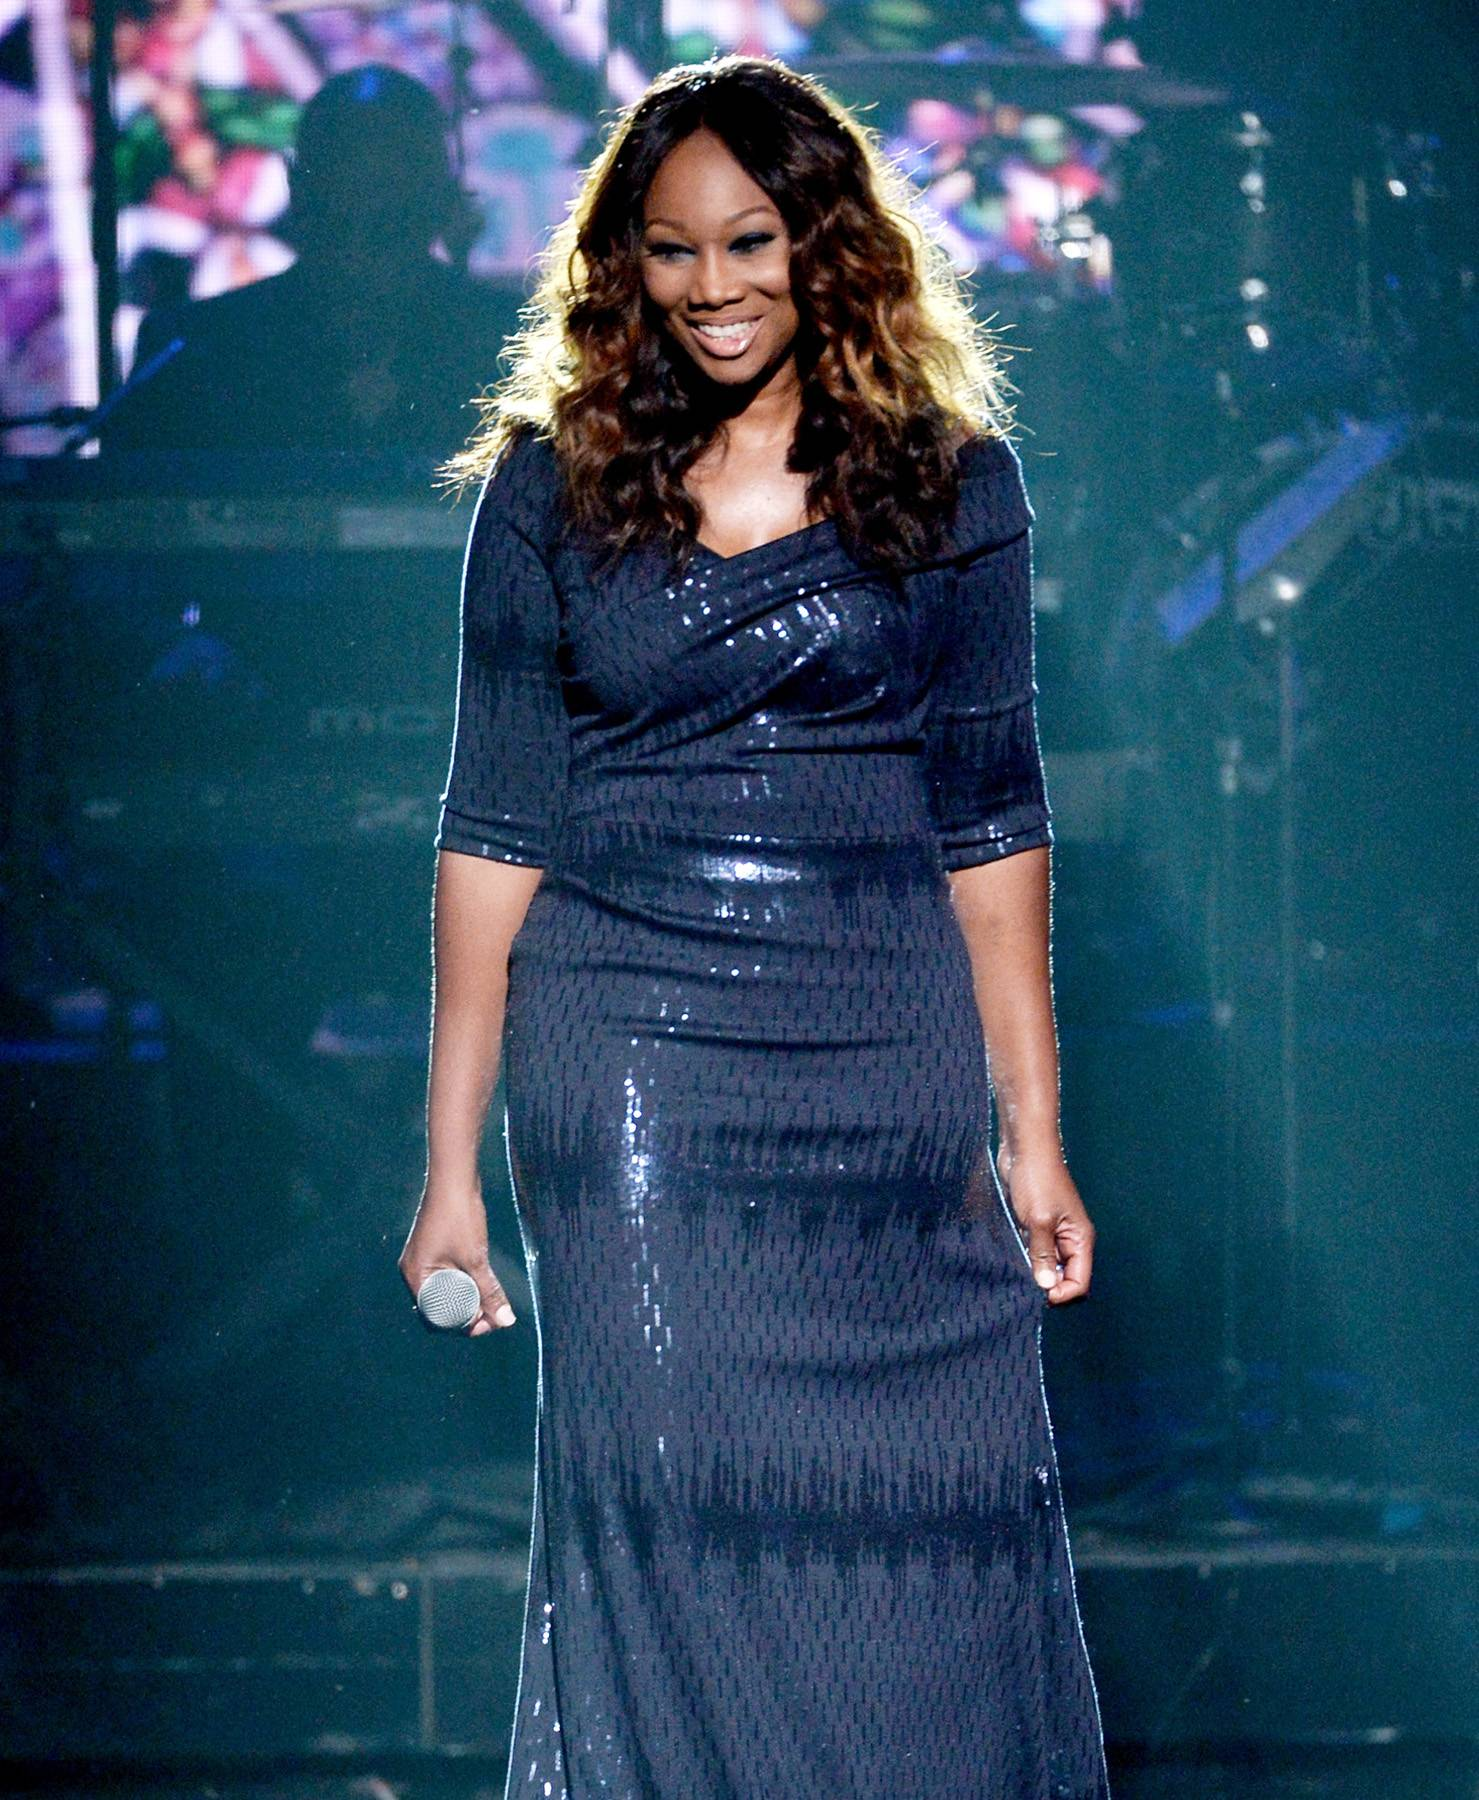 Yolanda Adams - Yolanda has been on top of the gospel charts for well over a decade. Her spirit and unfailing positivity have led her to touch hearts not only with her music, but with her upstanding character.(Photo: Kevin Winter/Getty Images for BET)